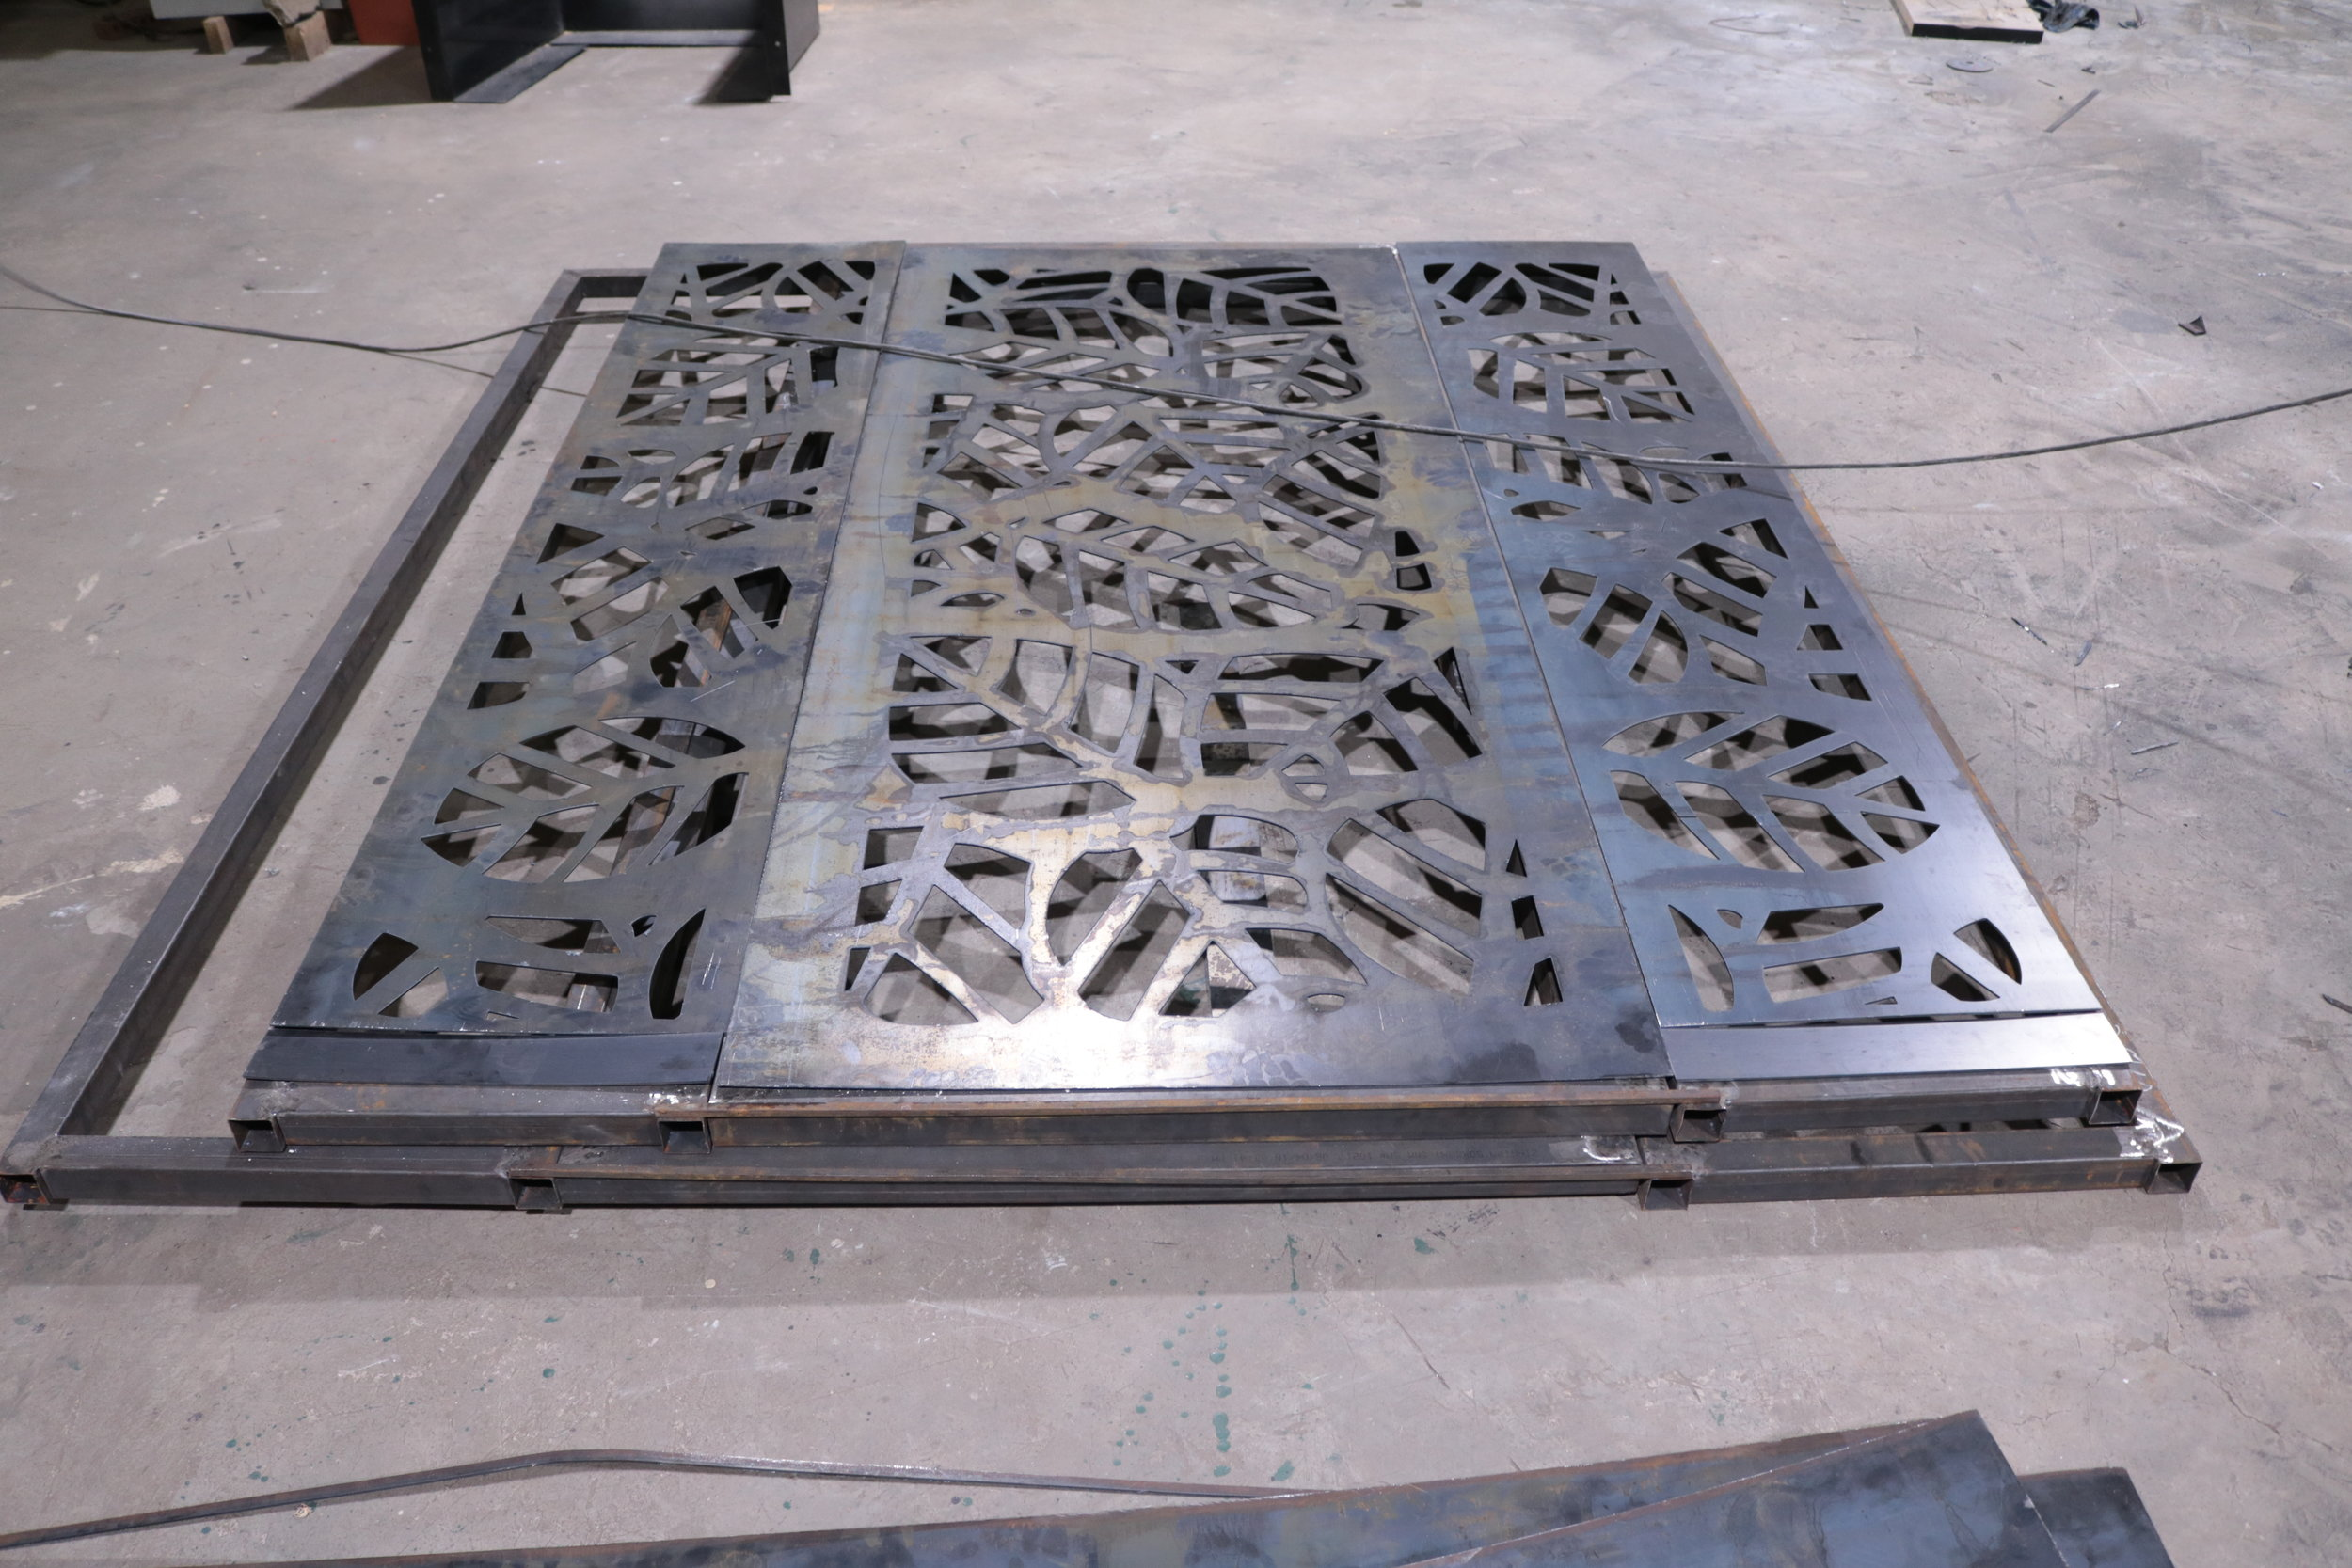 Making of the gate. The client had a specific design that he needed for his gate with a metal material. After the computer design, the CNC plasma cutter cut the design on the sheets of metal and thereafter the client left with the pieces to assemble them at home.